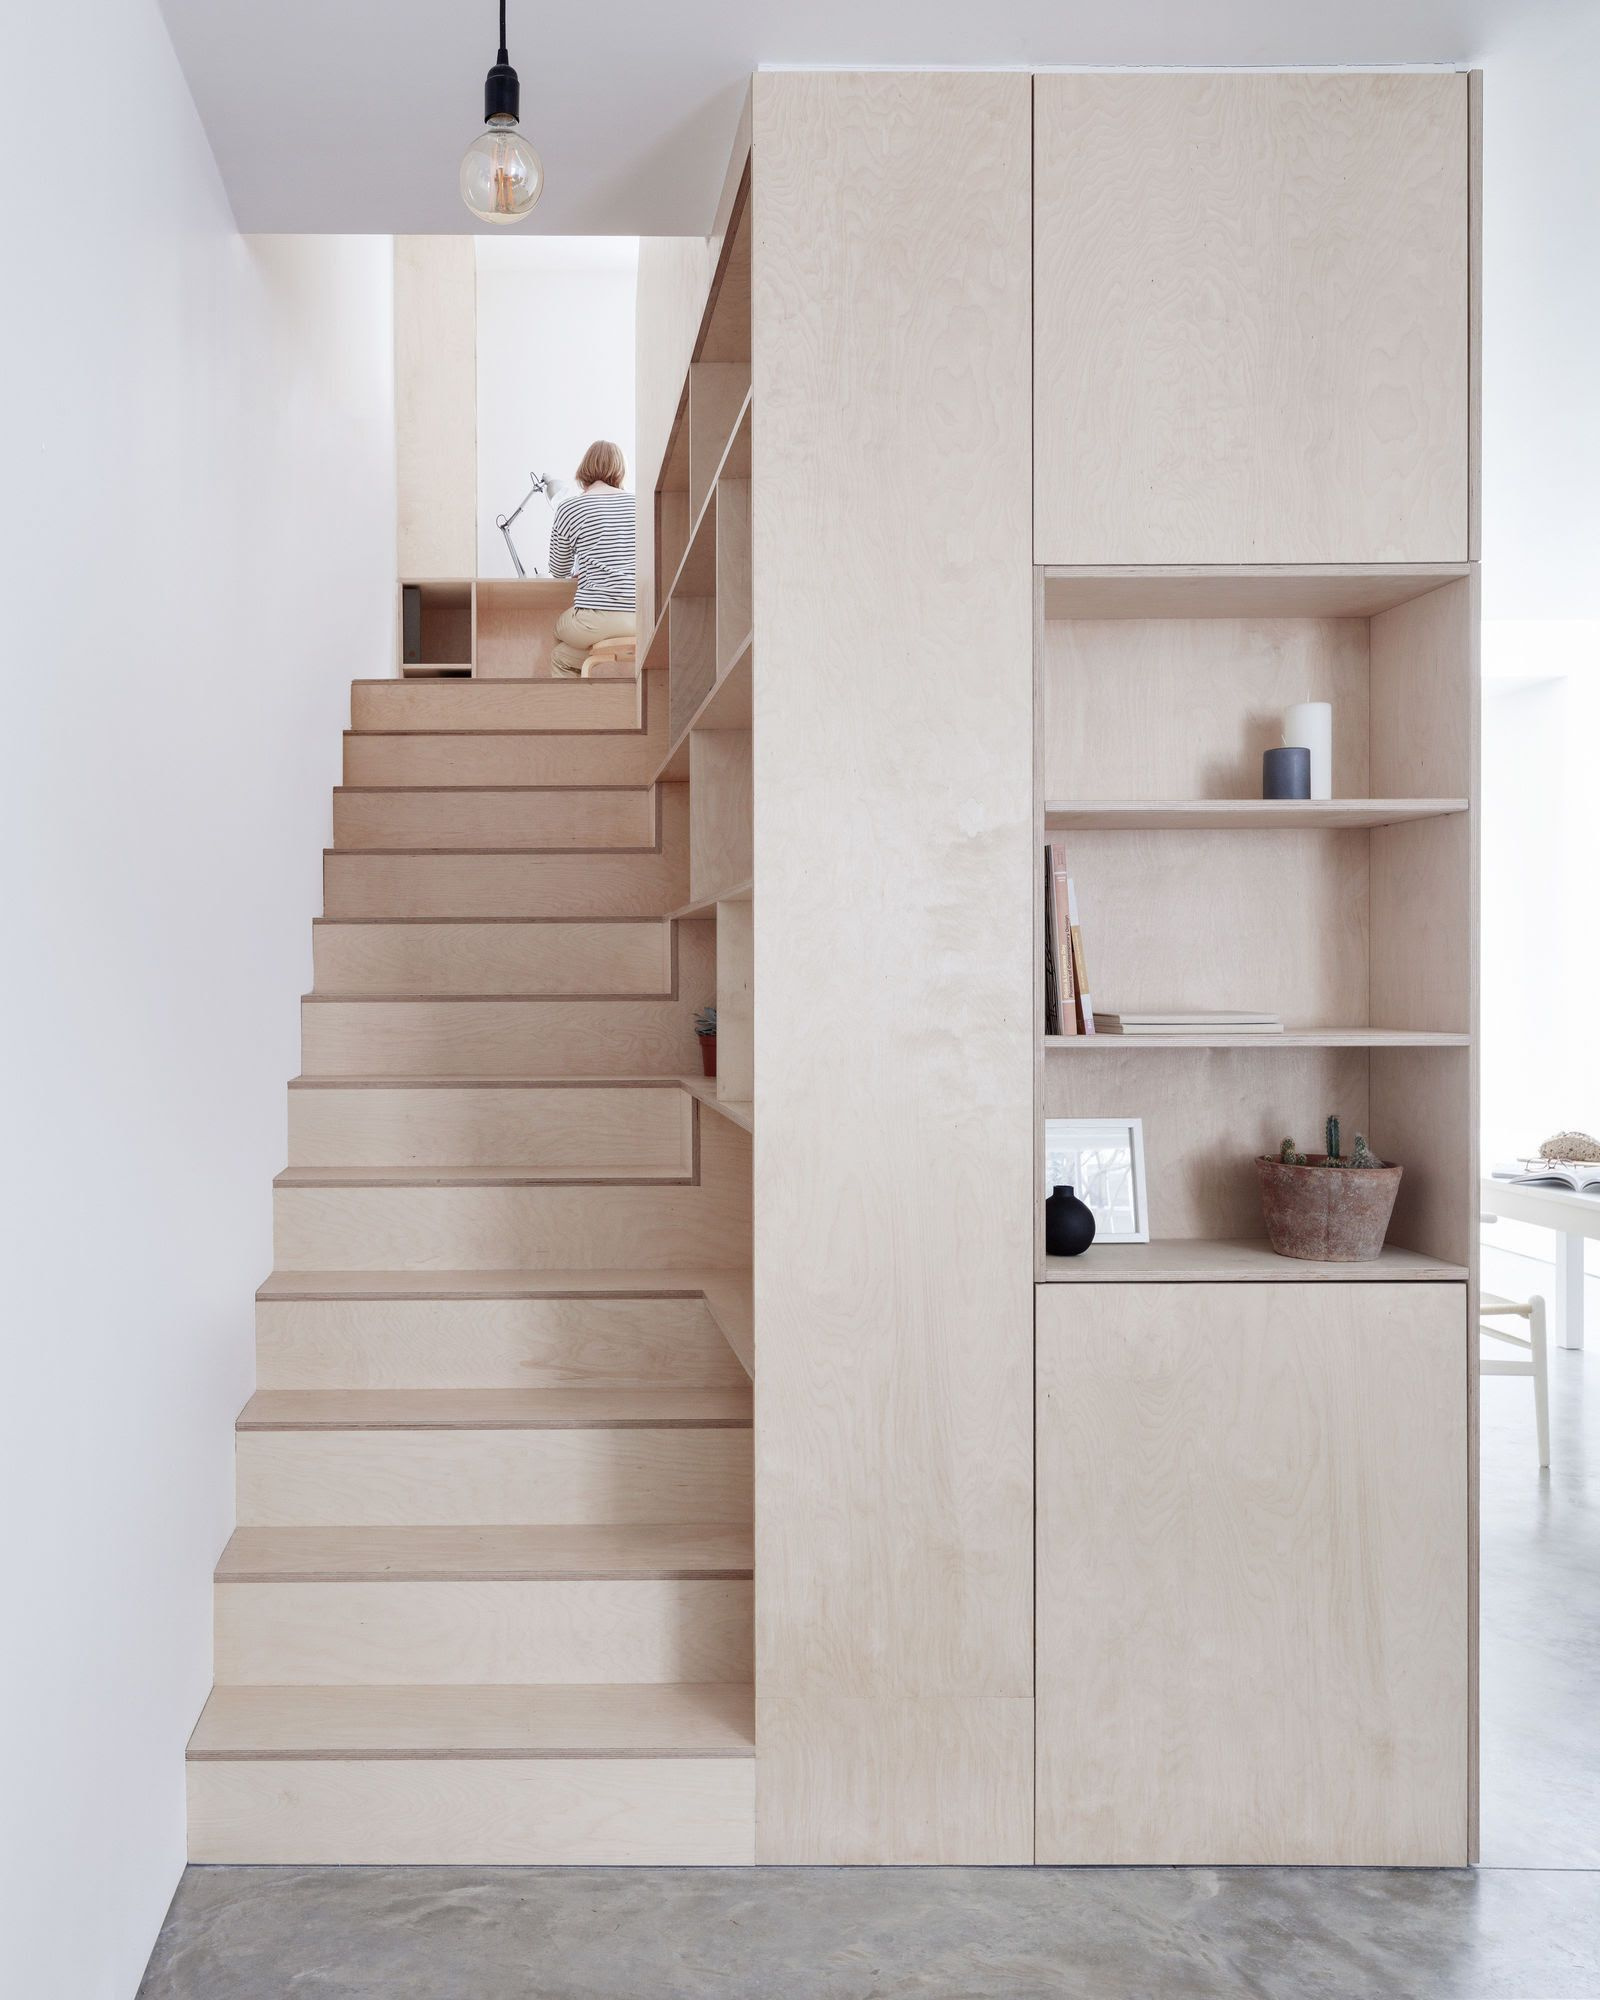 Best Larissa Johnston Architects Birch Plywood Stairs With 400 x 300